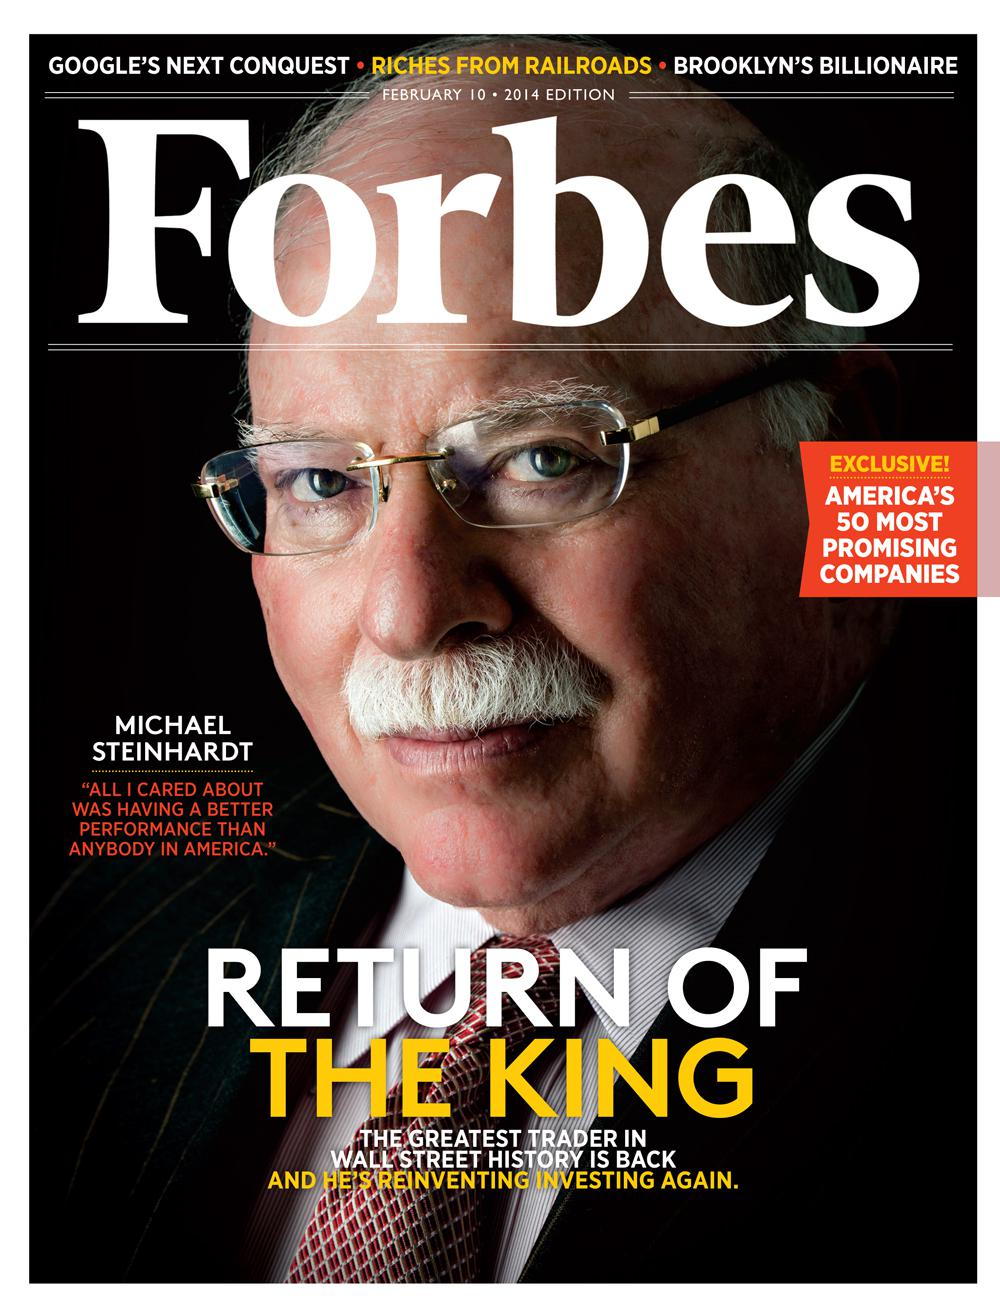 Michael Steinhardt, Wall Street's Greatest Trader, Is Back -- And He's Reinventing Investing Again